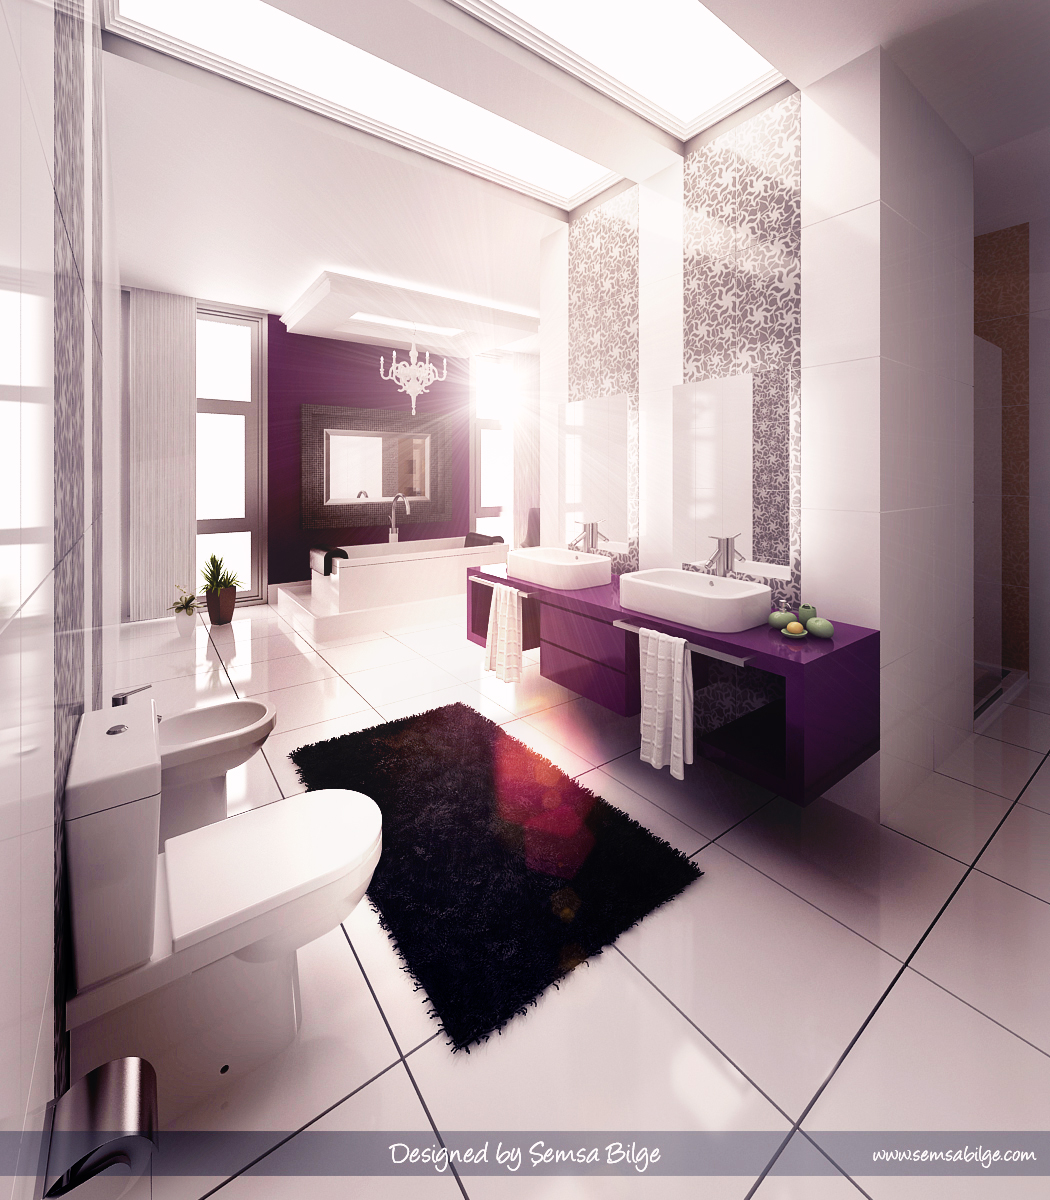 Inspiring bathroom designs for the soul for Pictures of beautiful bathroom designs